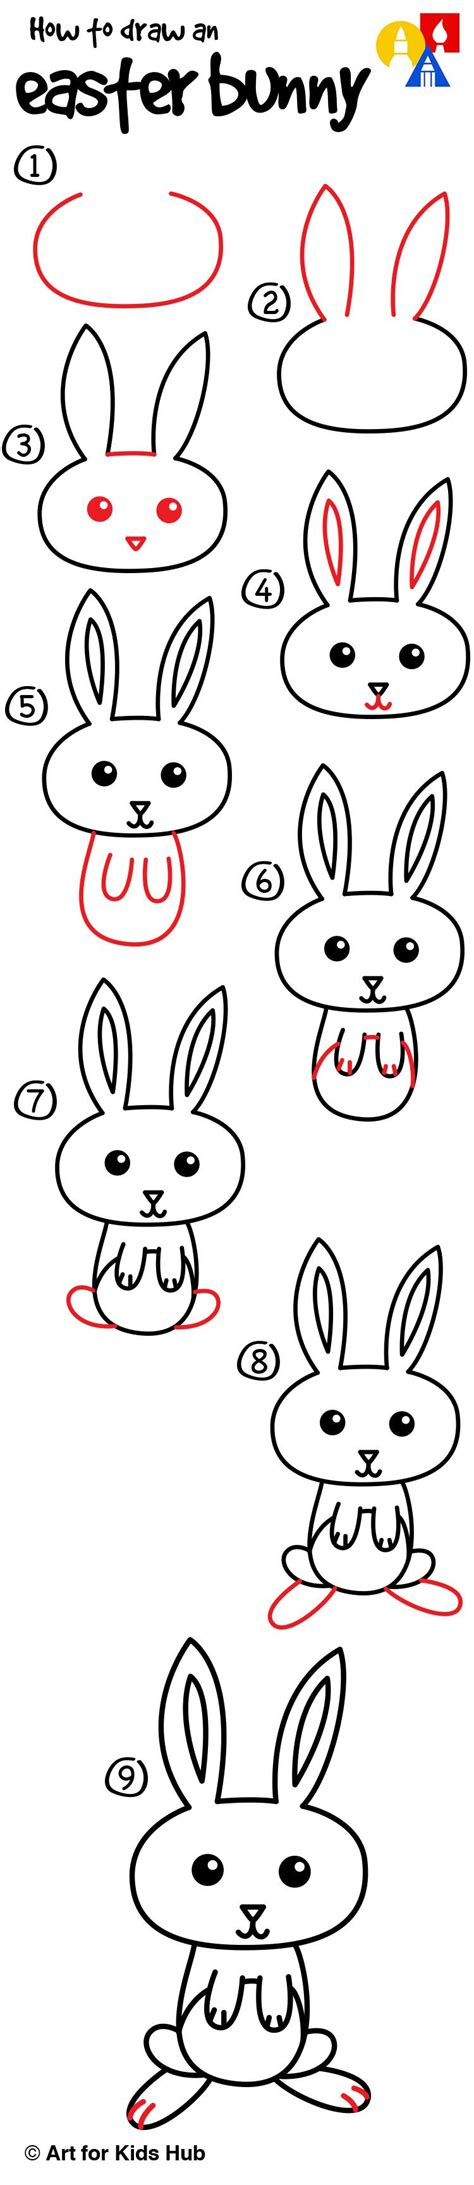 how to draw a doodle bunny how to draw a easter bunny for hub